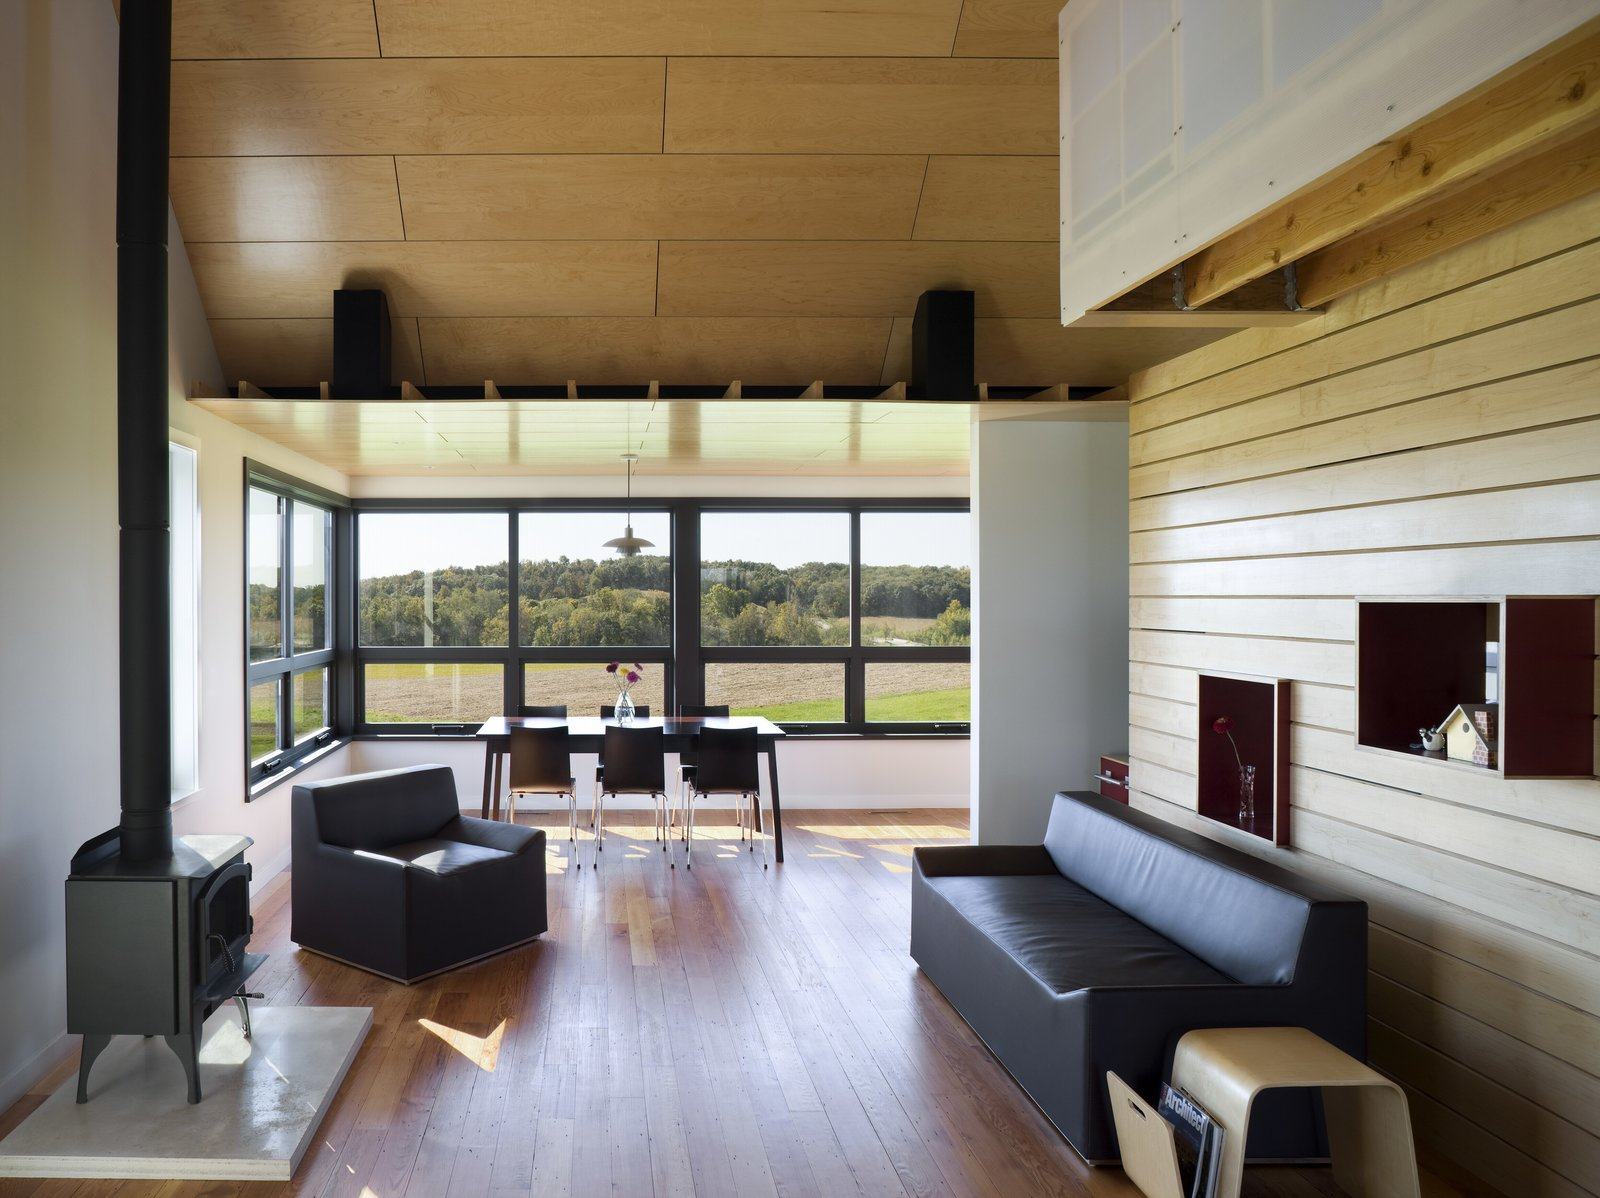 Yum Yum Farm in Iowa Tagged: Living Room, Wood Burning Fireplace, Chair, Sofa, and Medium Hardwood Floor.  Photo 6 of 11 in Dwell's Top 10 Design Pros of 2017 from Yum Yum Farm